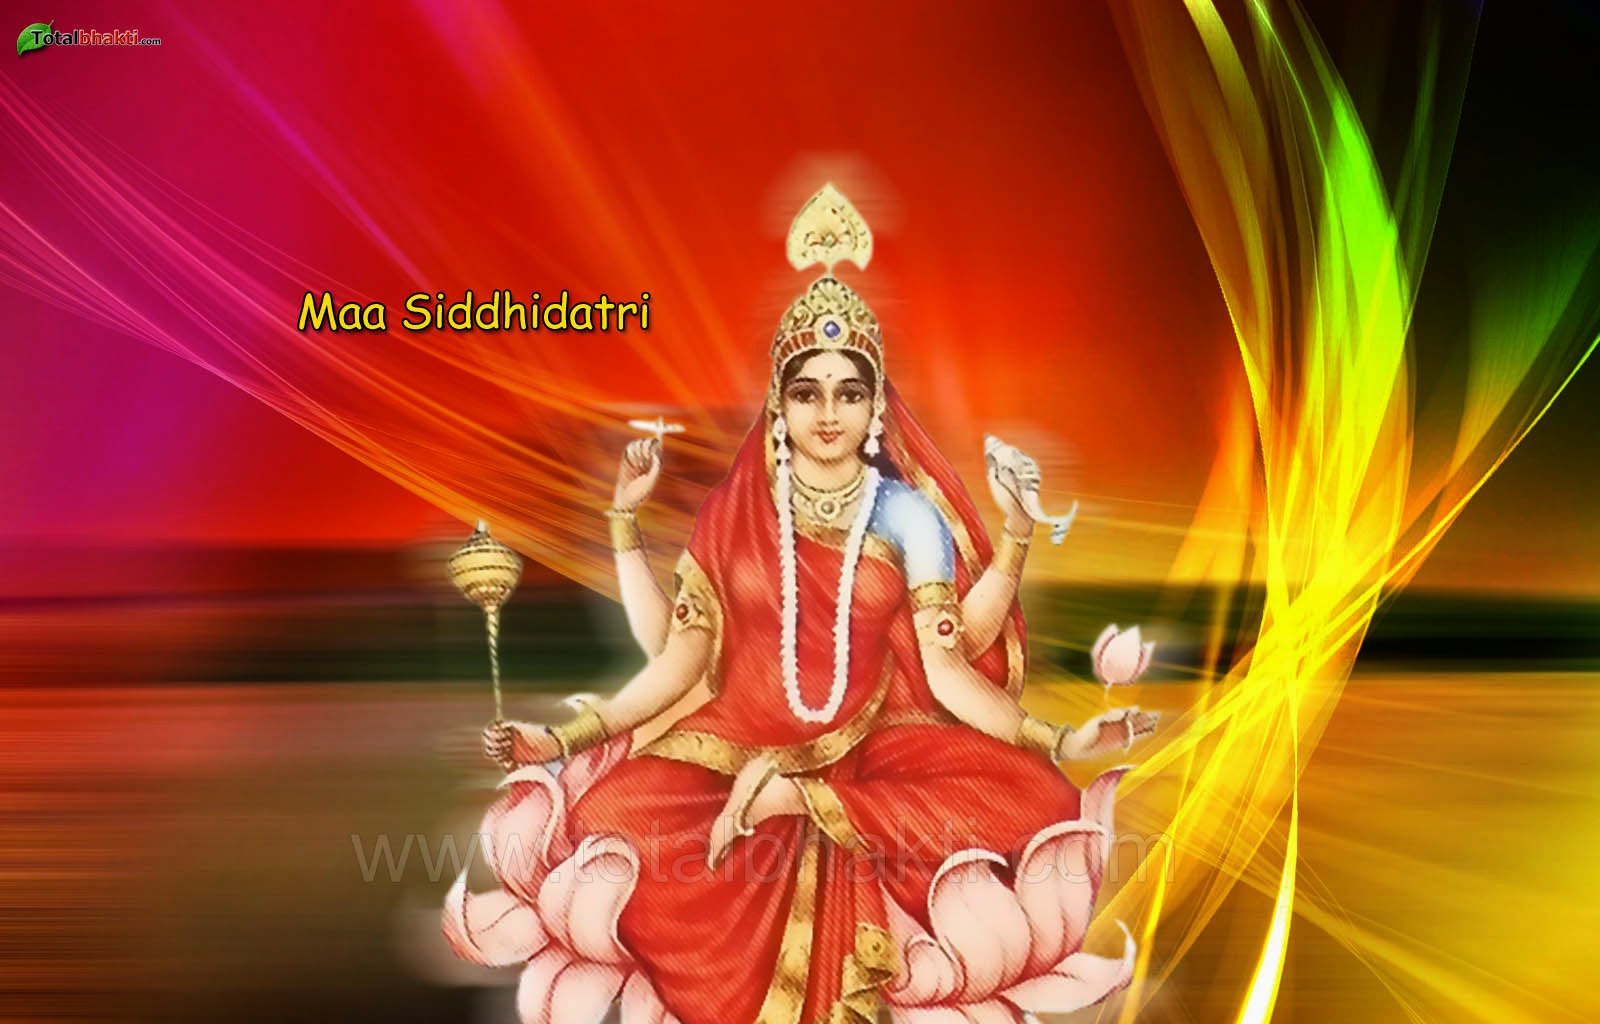 Maa Siddhidatri Images Picture Wallpaper Photos